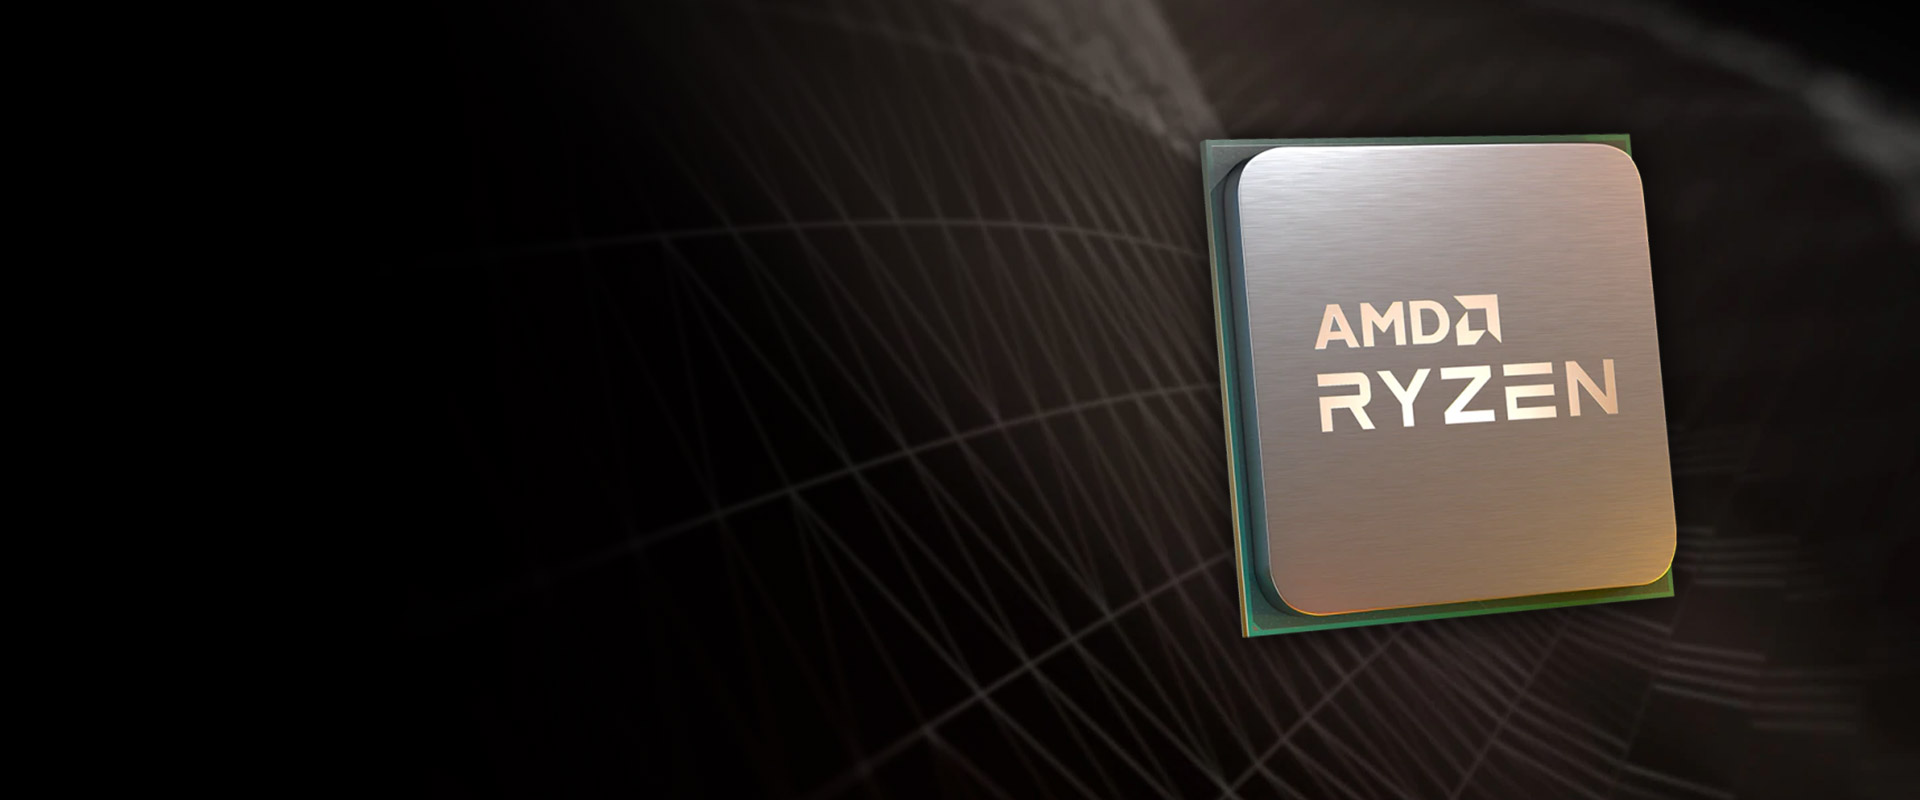 Customize Your ORIGIN PC With AMD Ryzen Processors!